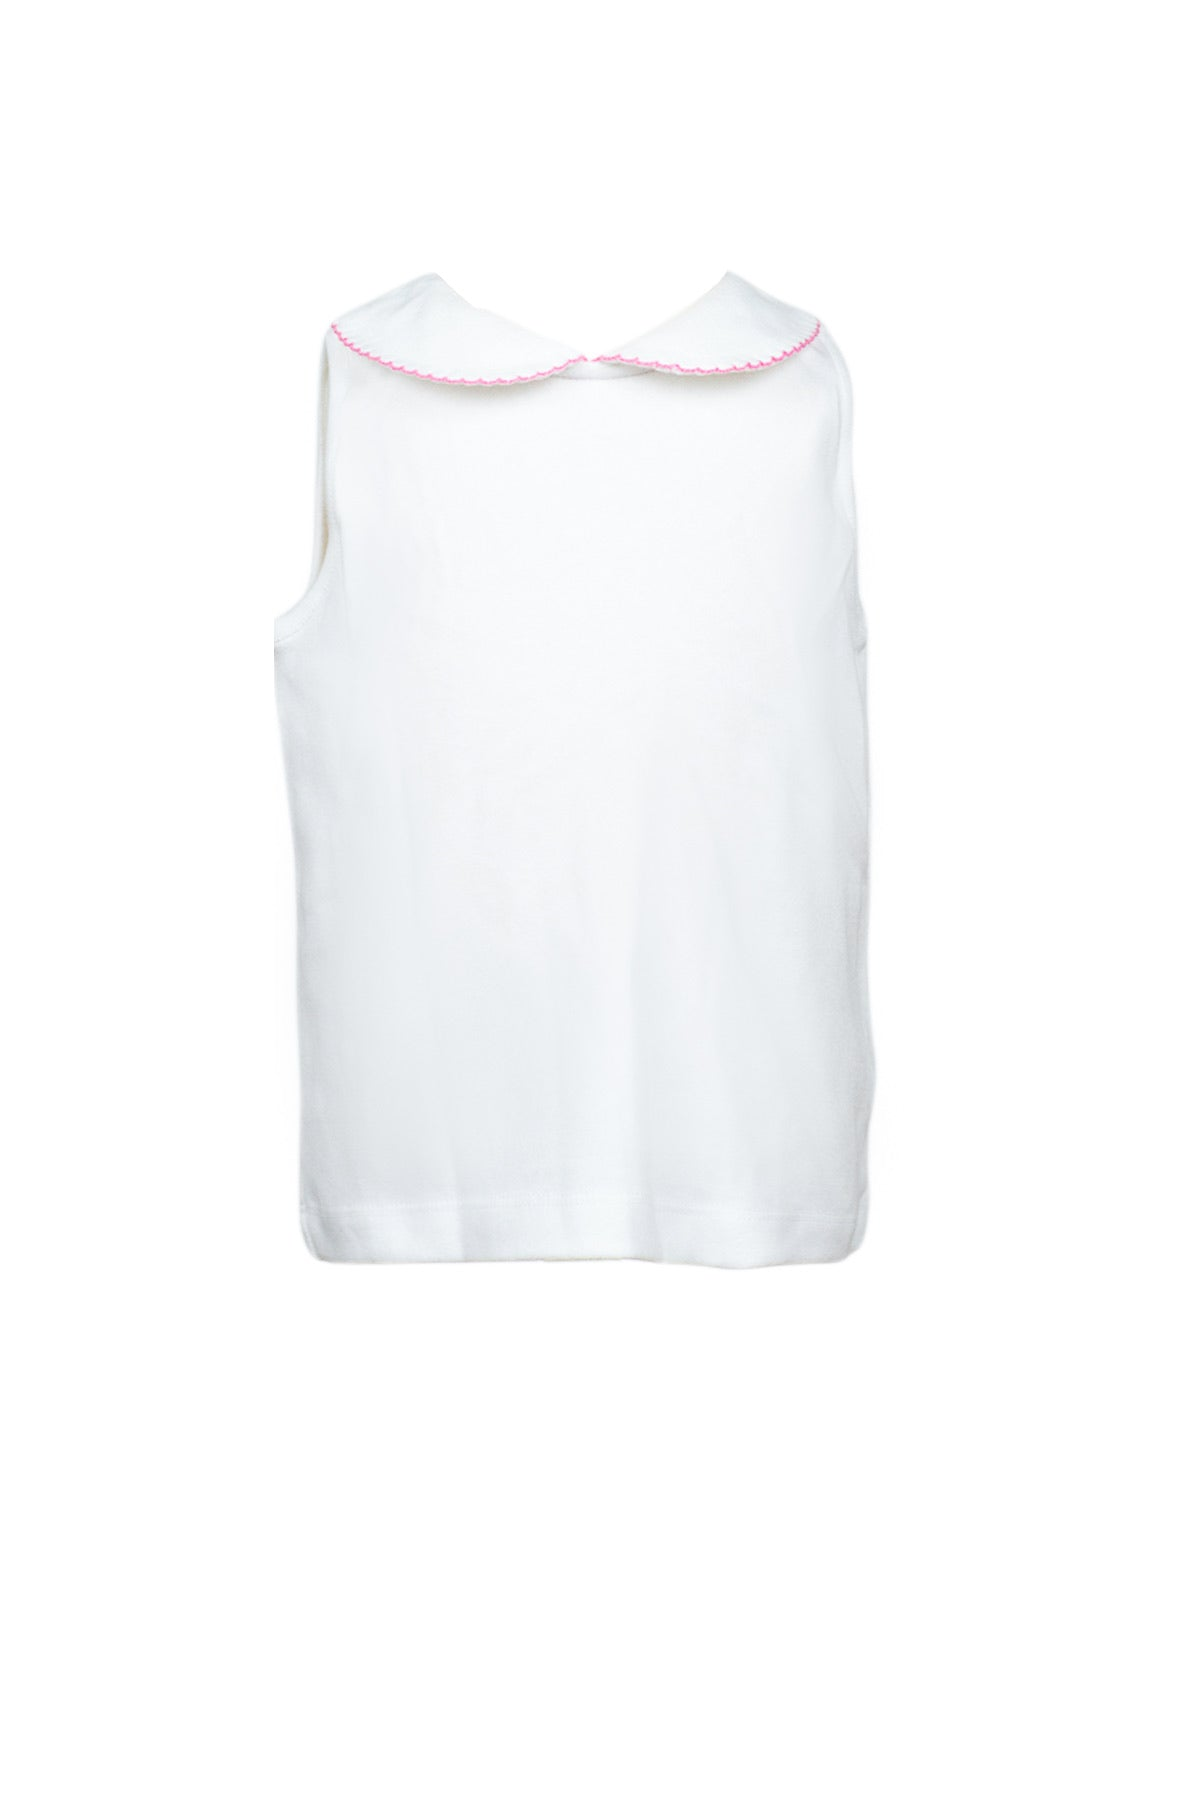 The Proper Peony Parkside girls sleeveless knit shirt pink